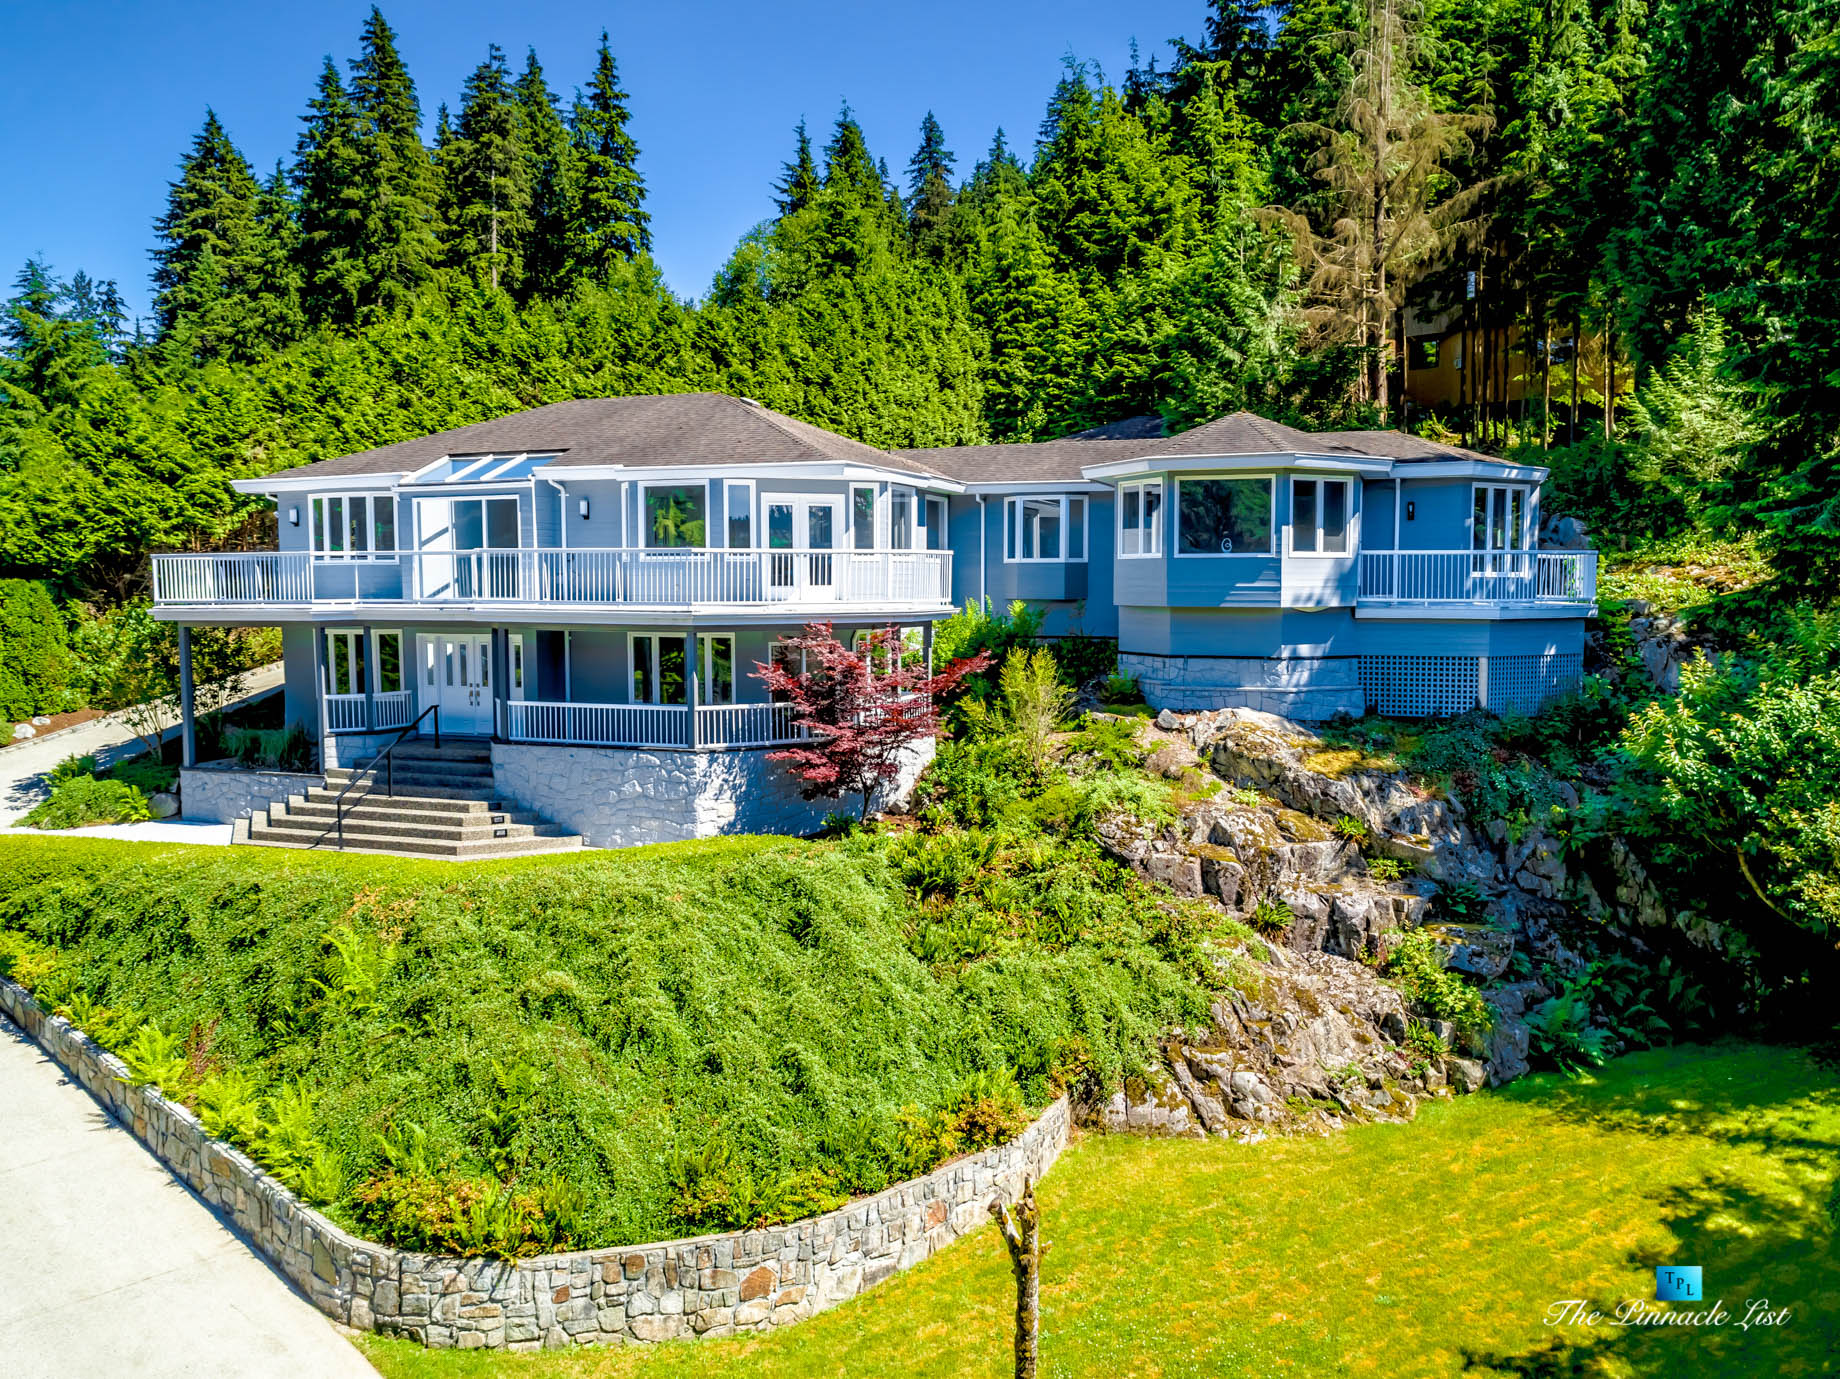 3314 Bedwell Bay Rd, Belcarra, BC, Canada